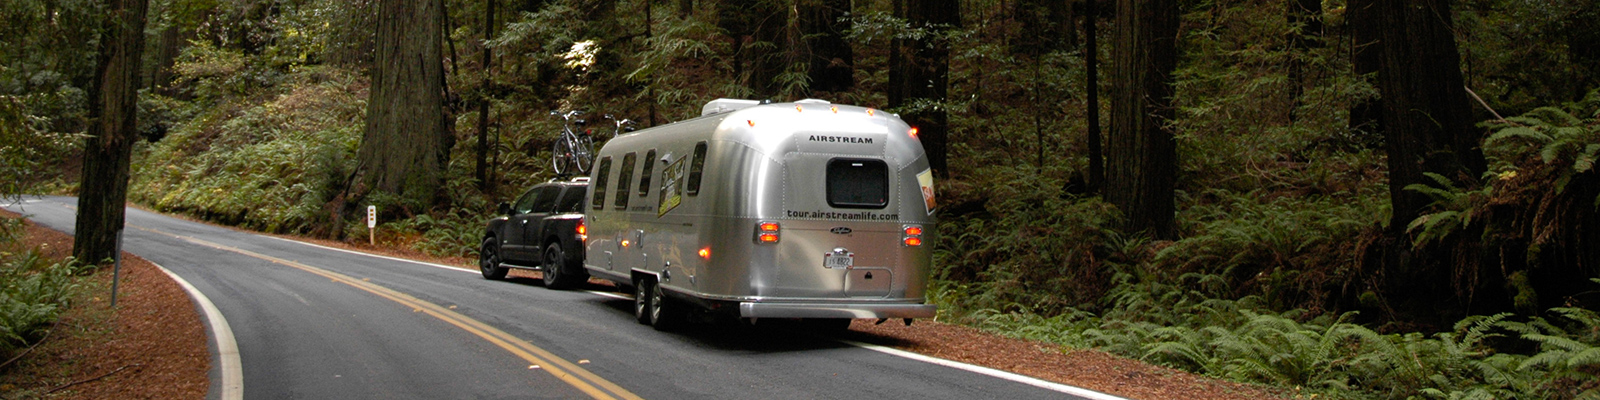 featured-airstreamlife-road